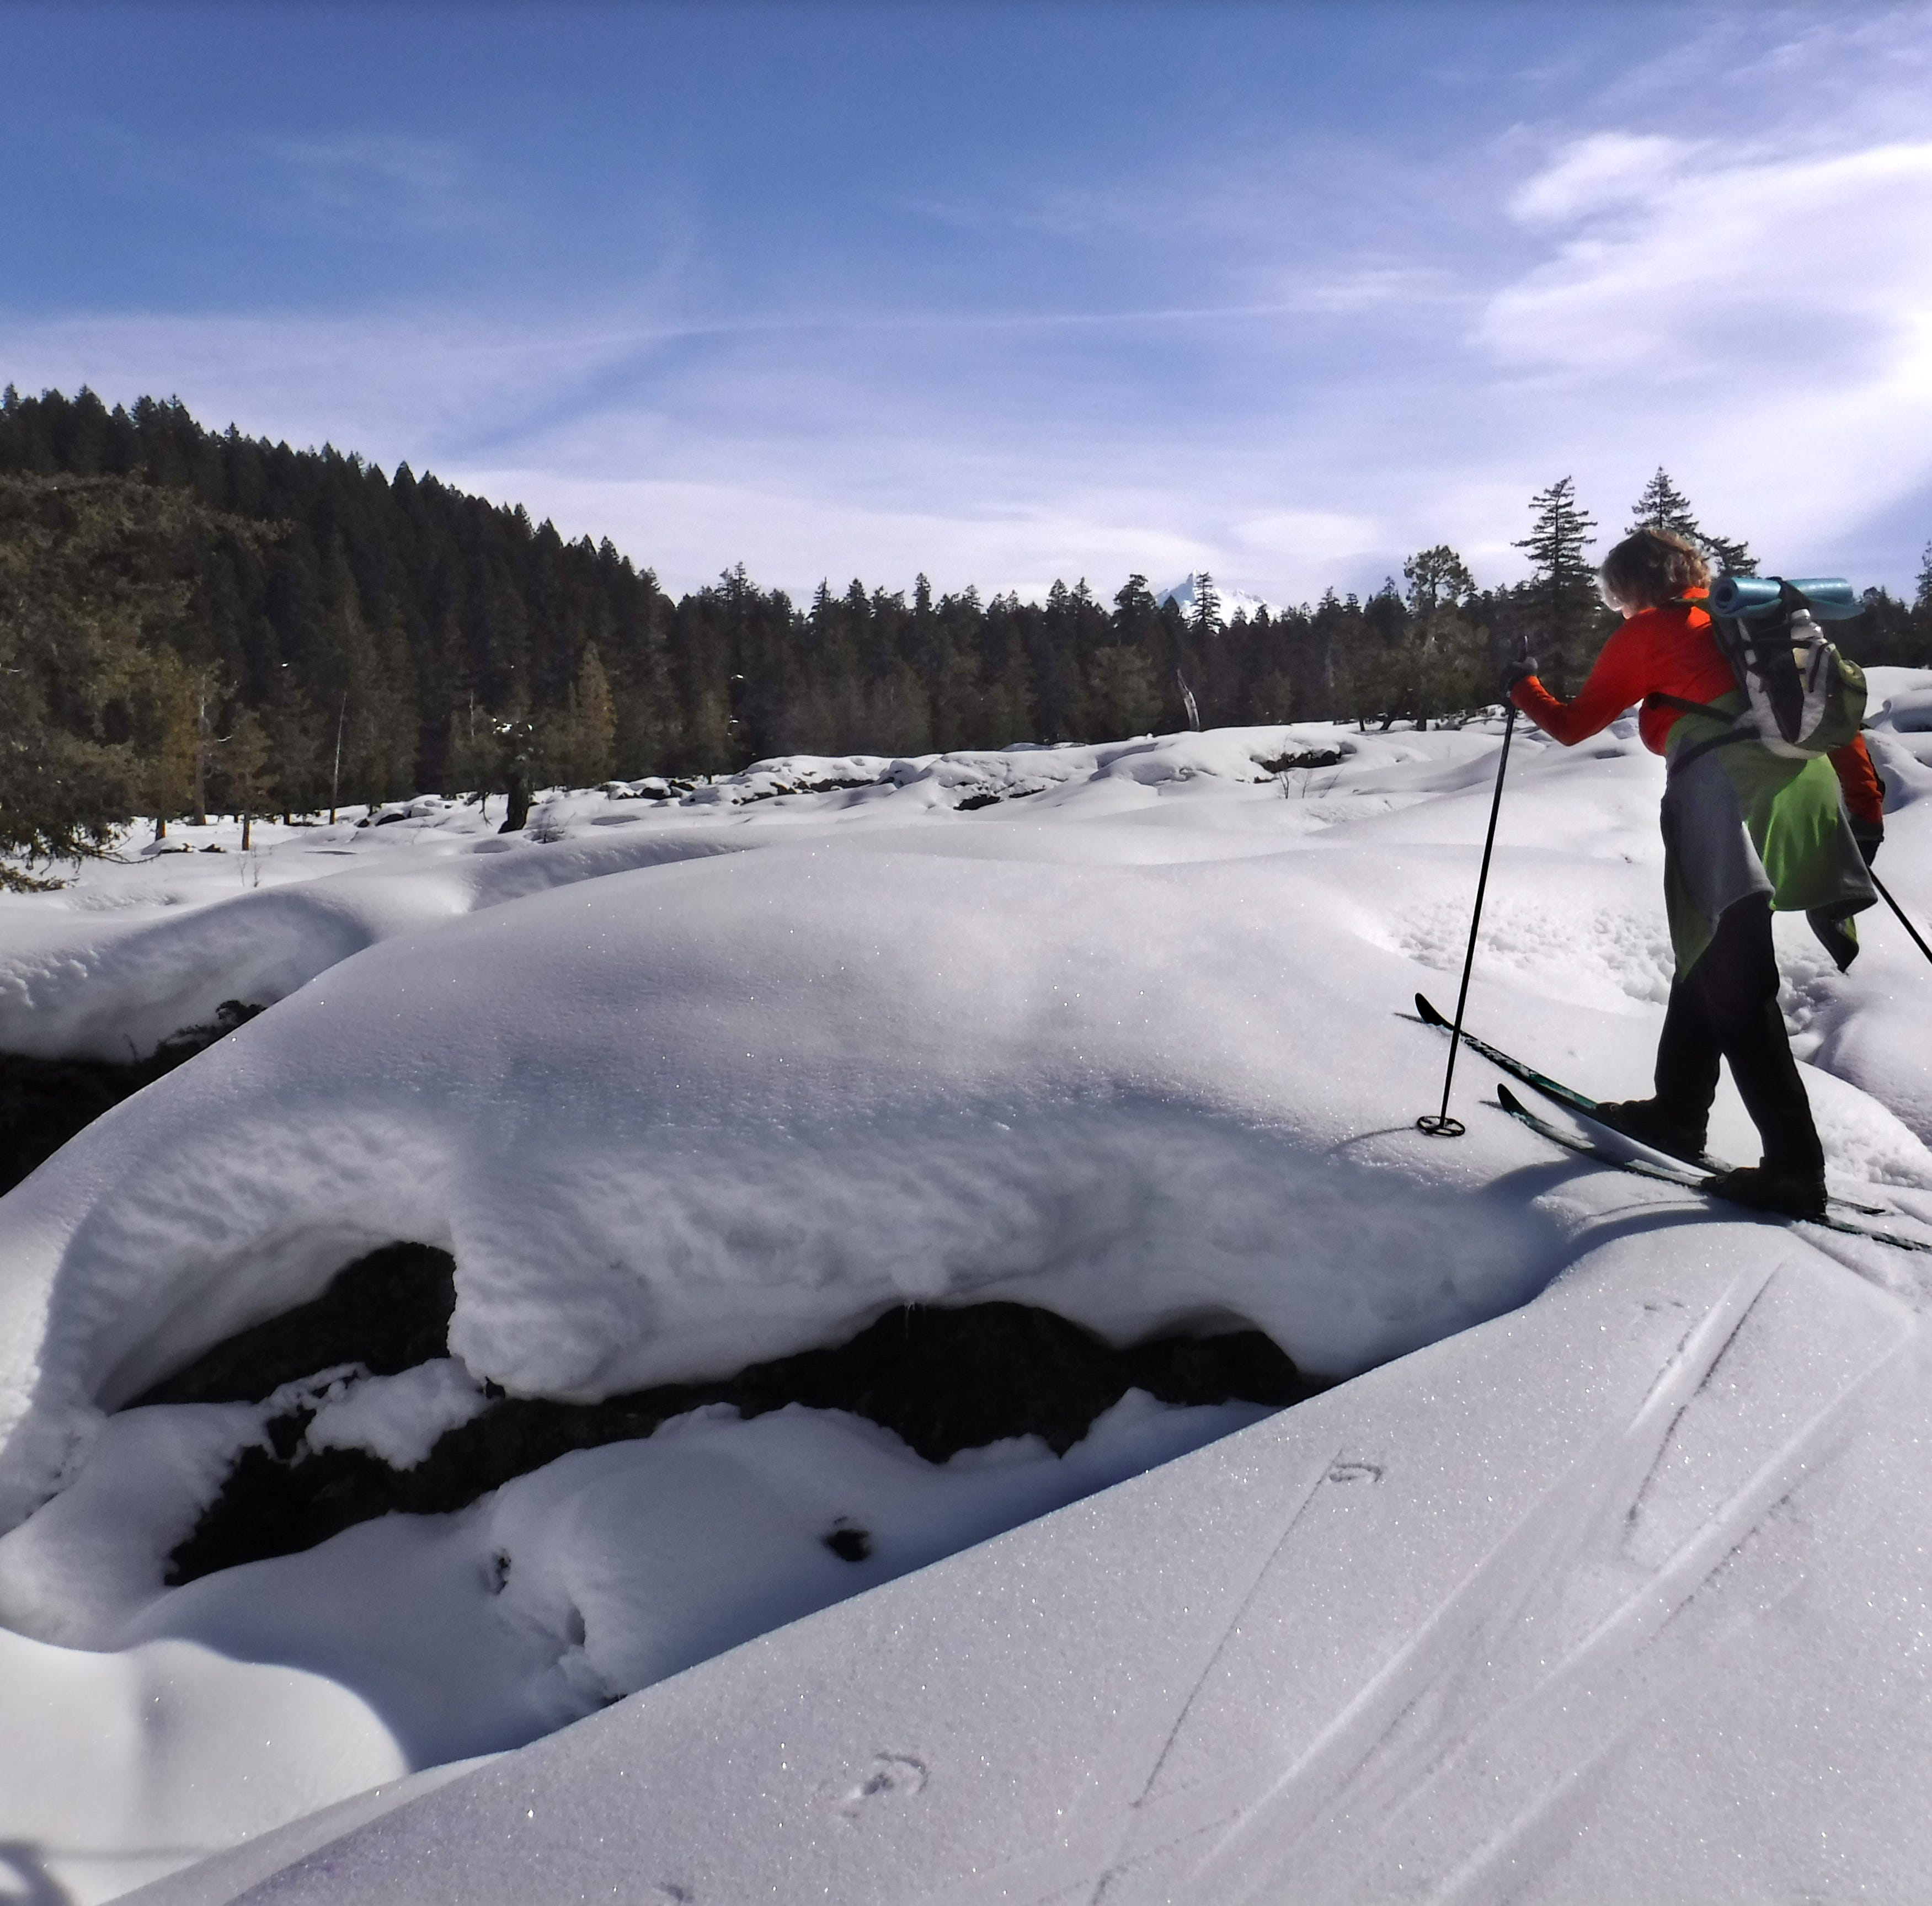 Skiing On Lava: The Mt. Washington Wilderness in winter